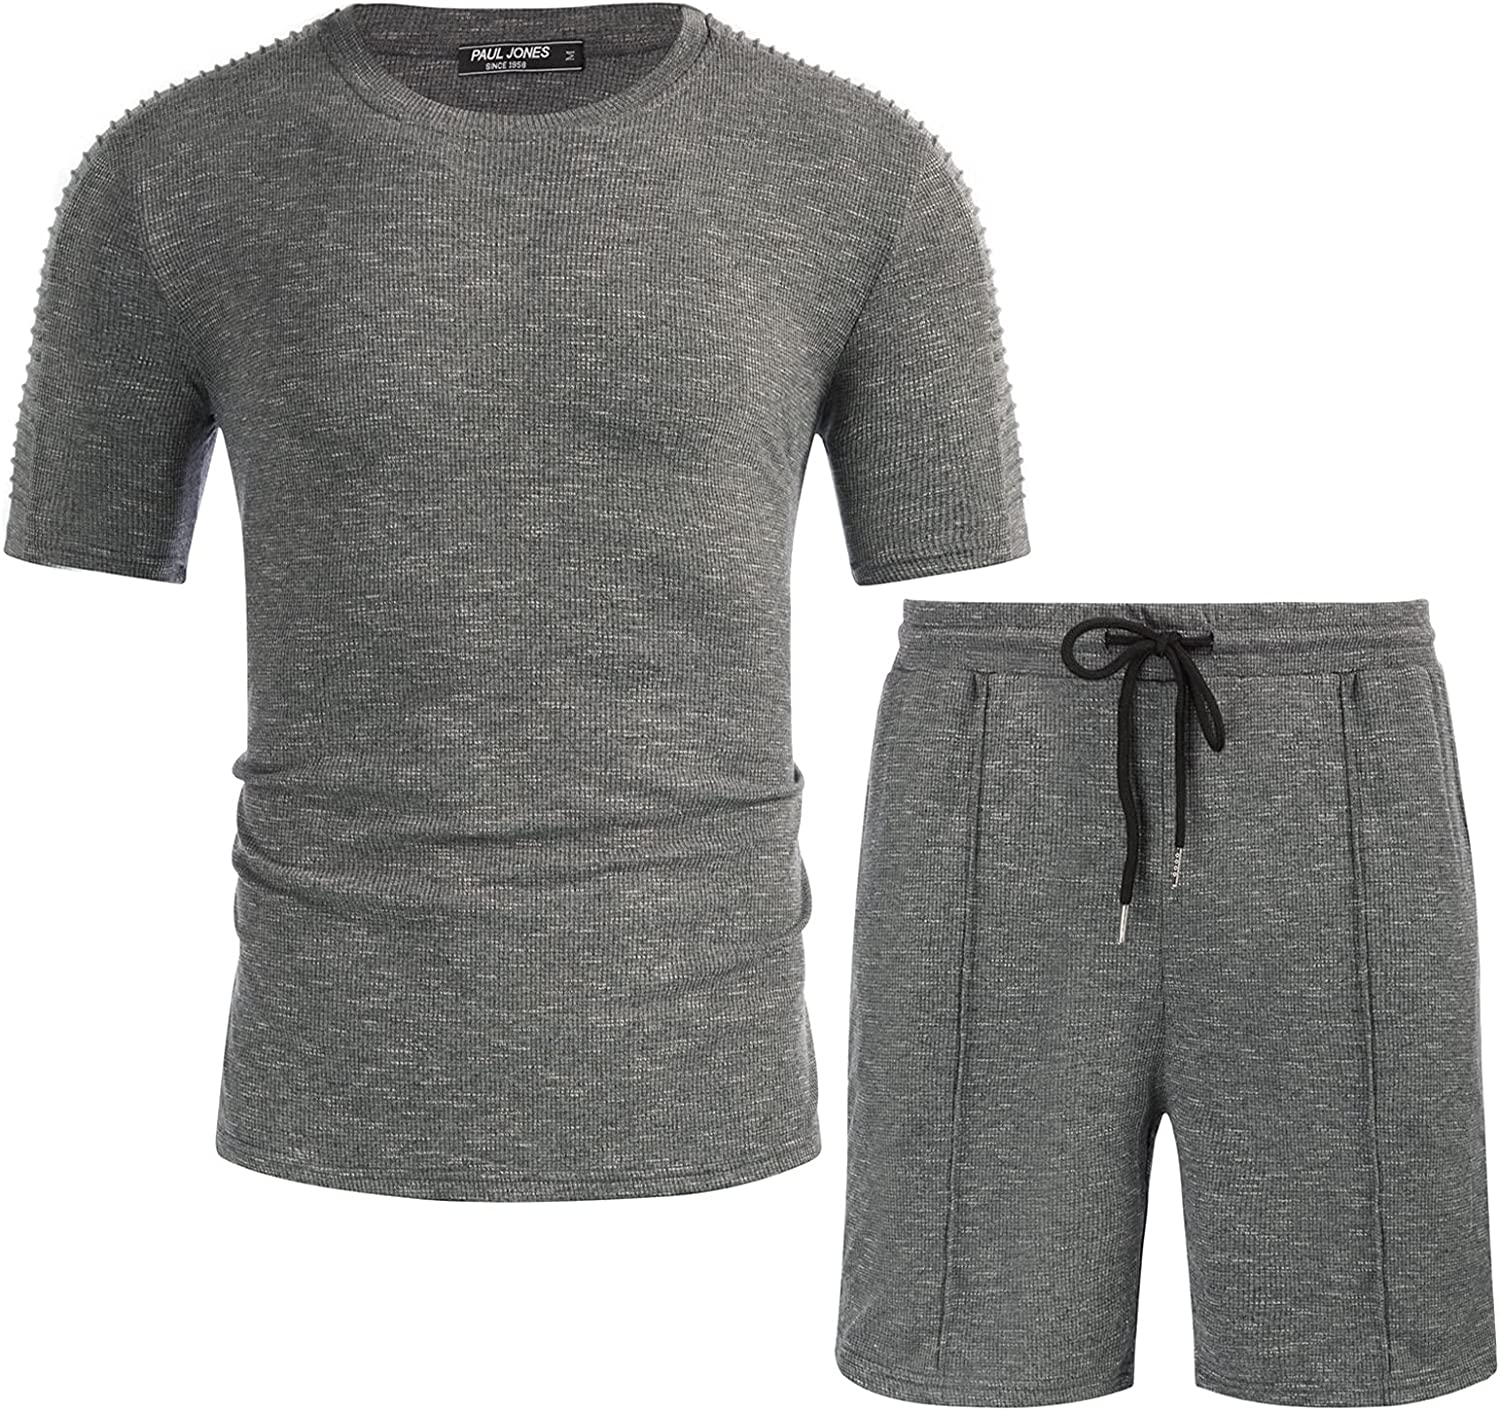 Some reservation PJ PAUL JONES Mens Ultra Soft and Short Muscle Shor T-Shirt Sets Price reduction